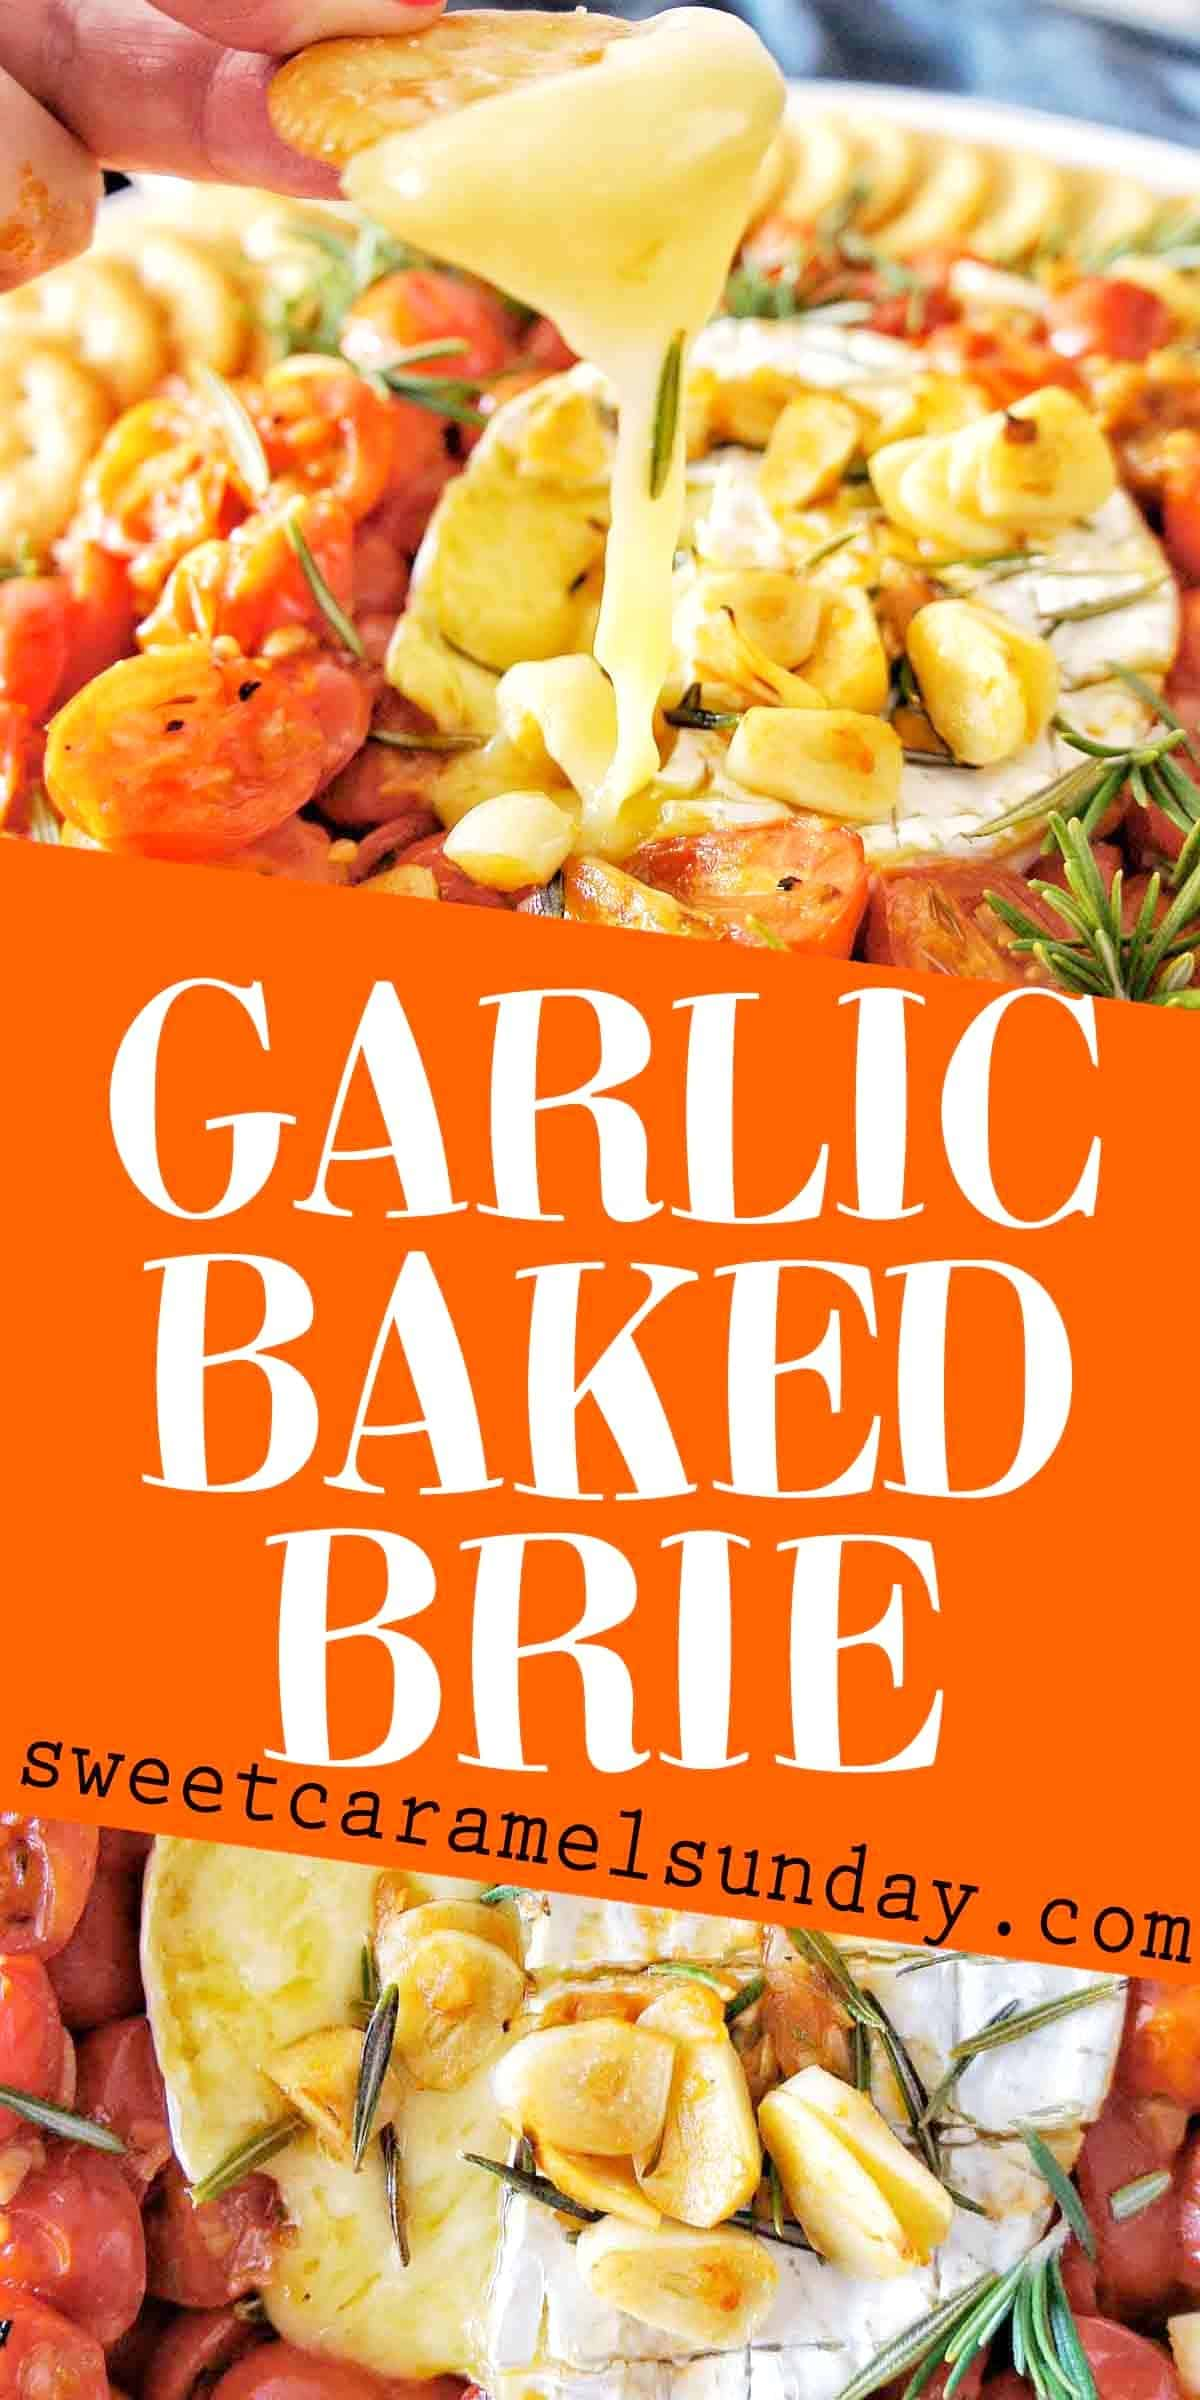 Garlic Baked Brie with text overlay